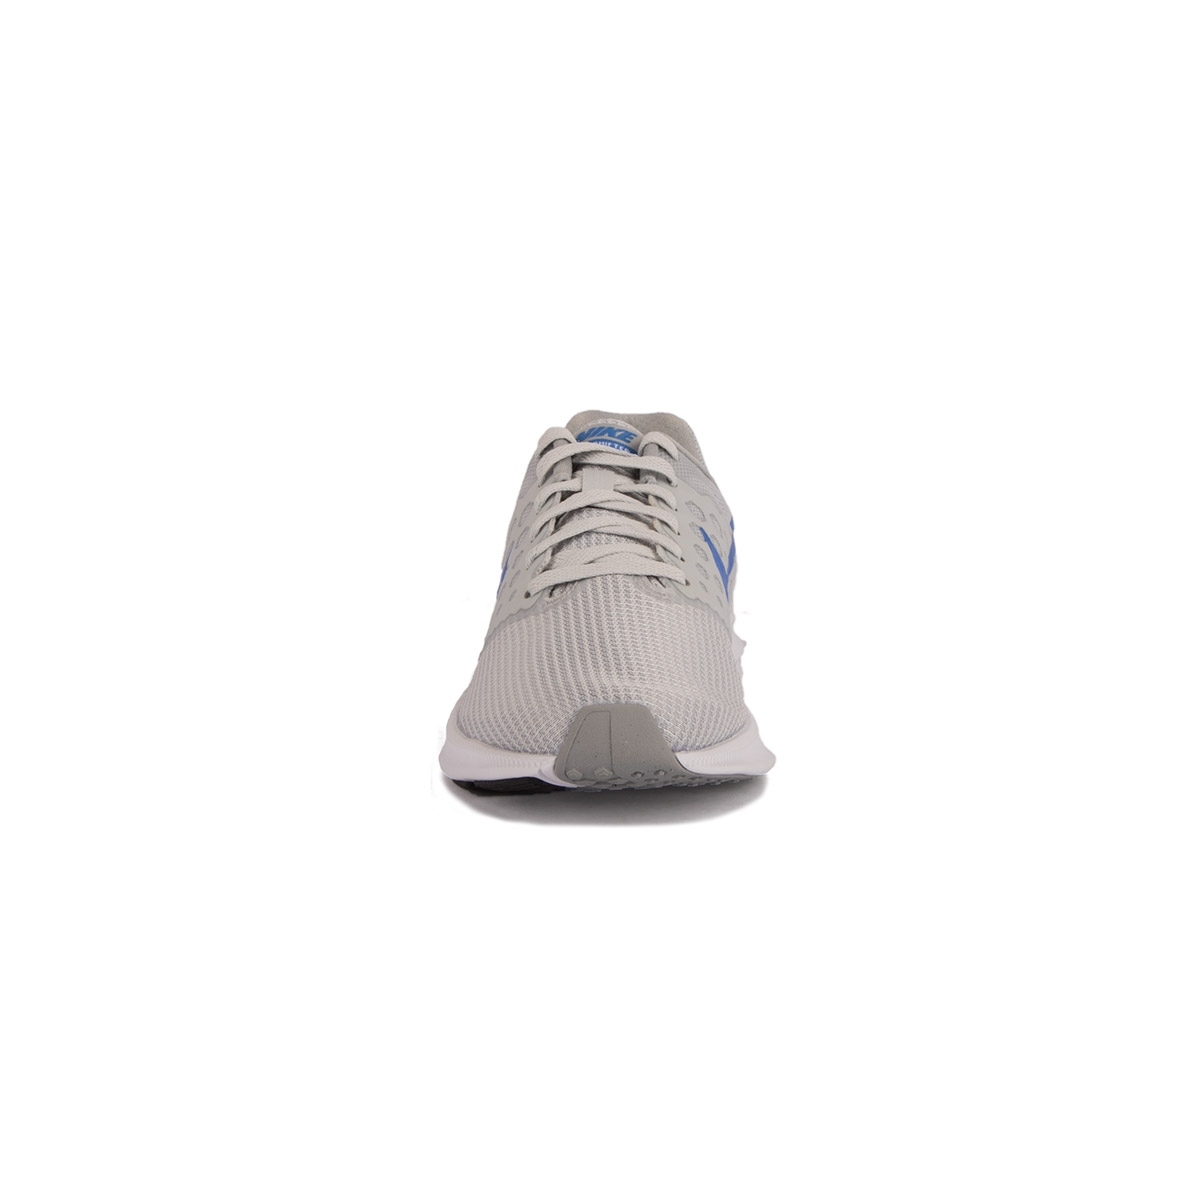 Nike Wmns Downshifter 7 Gris Azul Pure Platinum Medium Blue Mujer